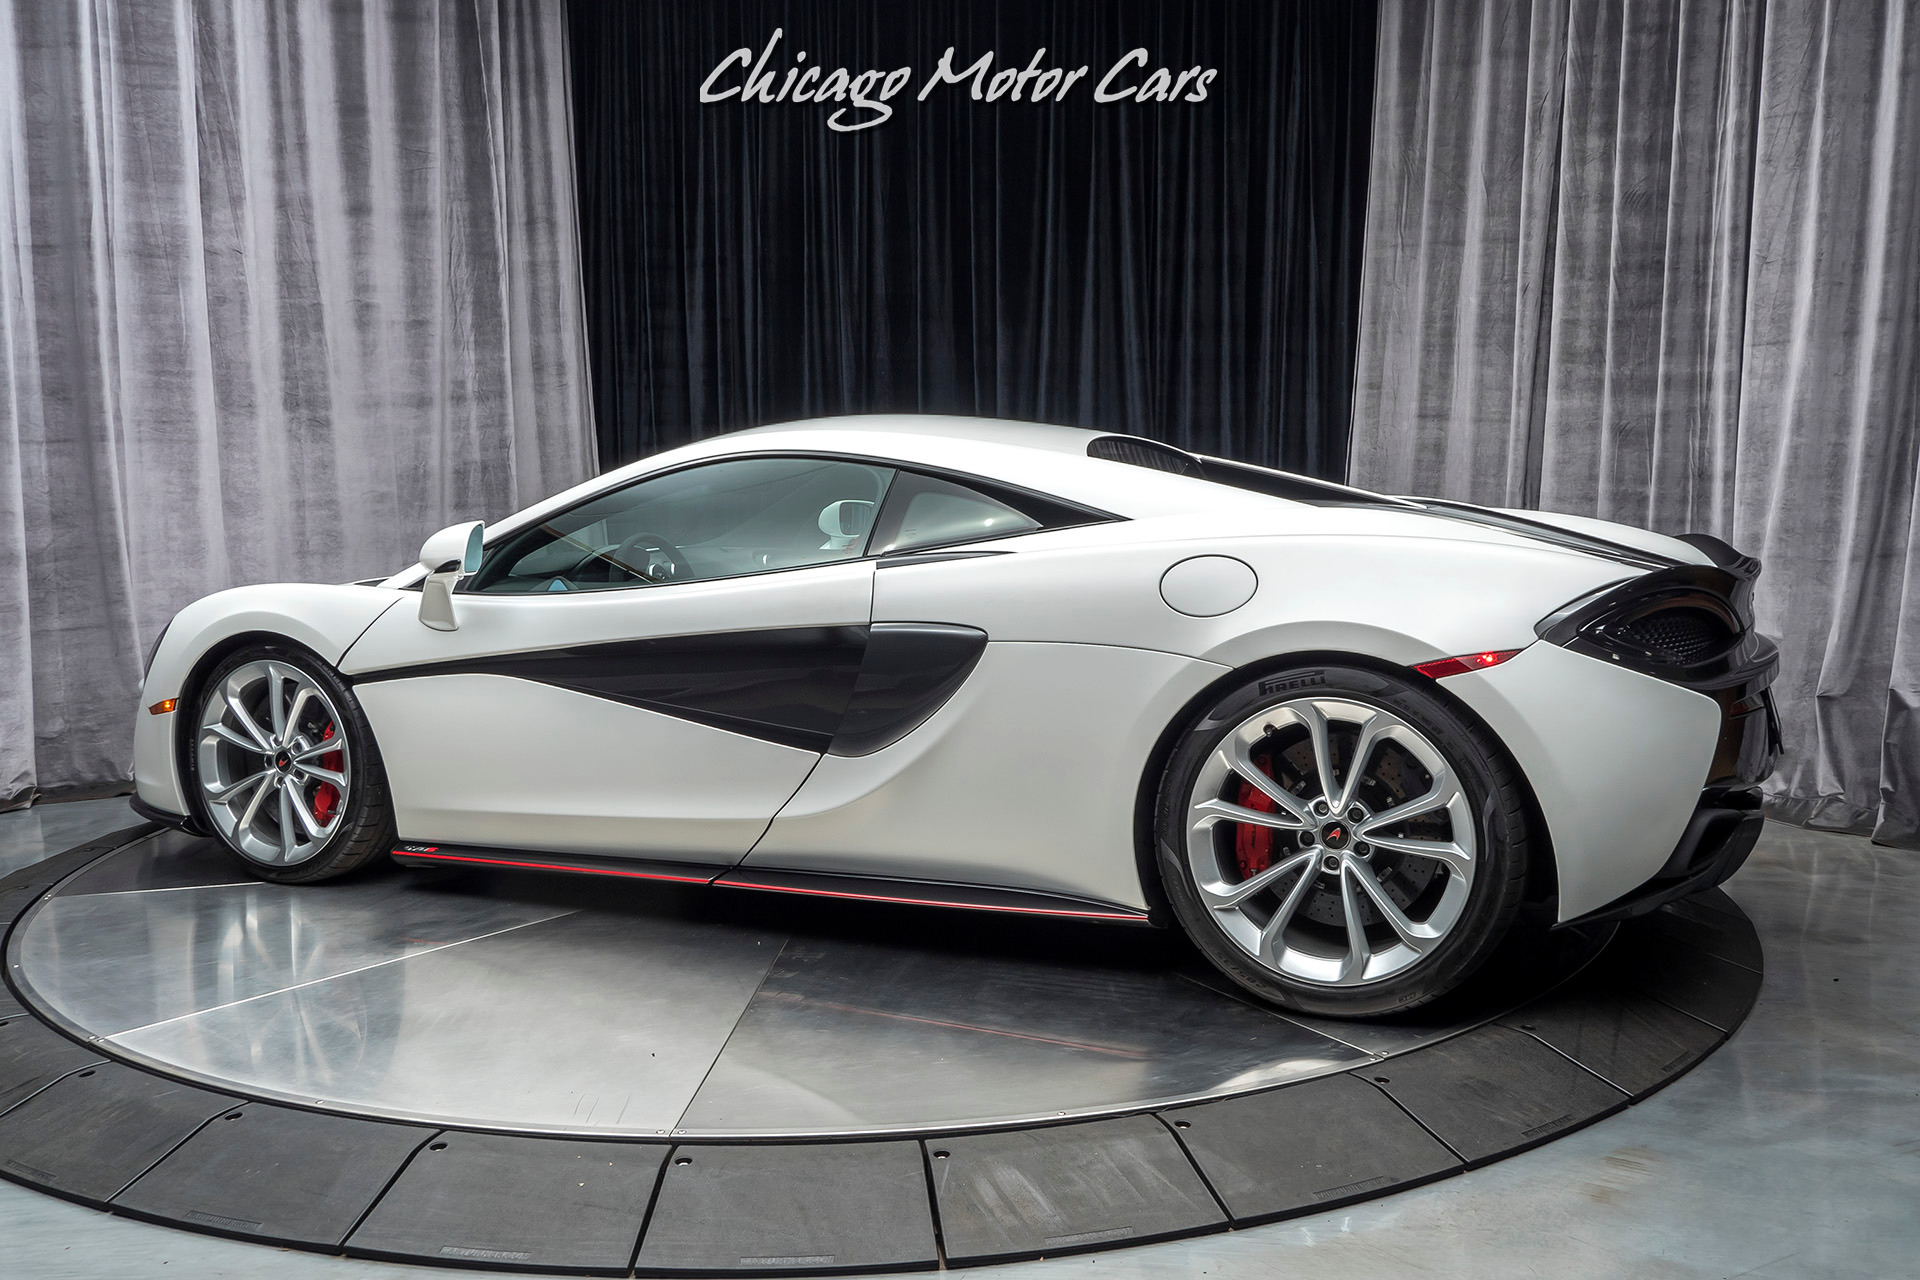 Used 2019 McLaren 570S Coupe MSRP $203K+ Only 1,700 MILES ...